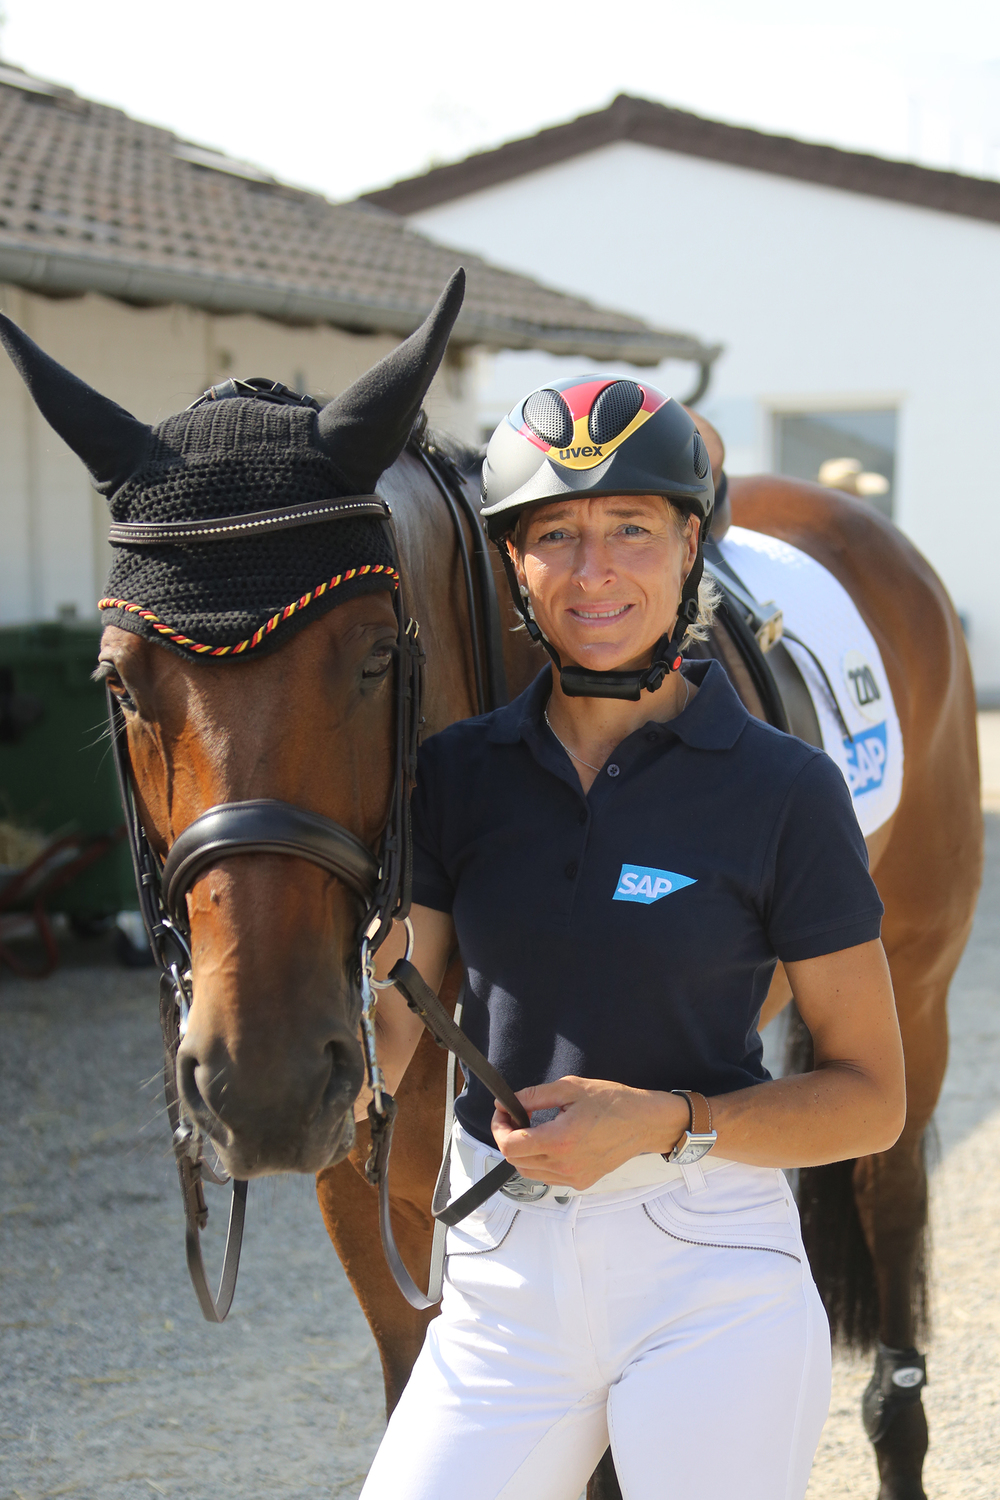 German event rider Ingrid Klimke